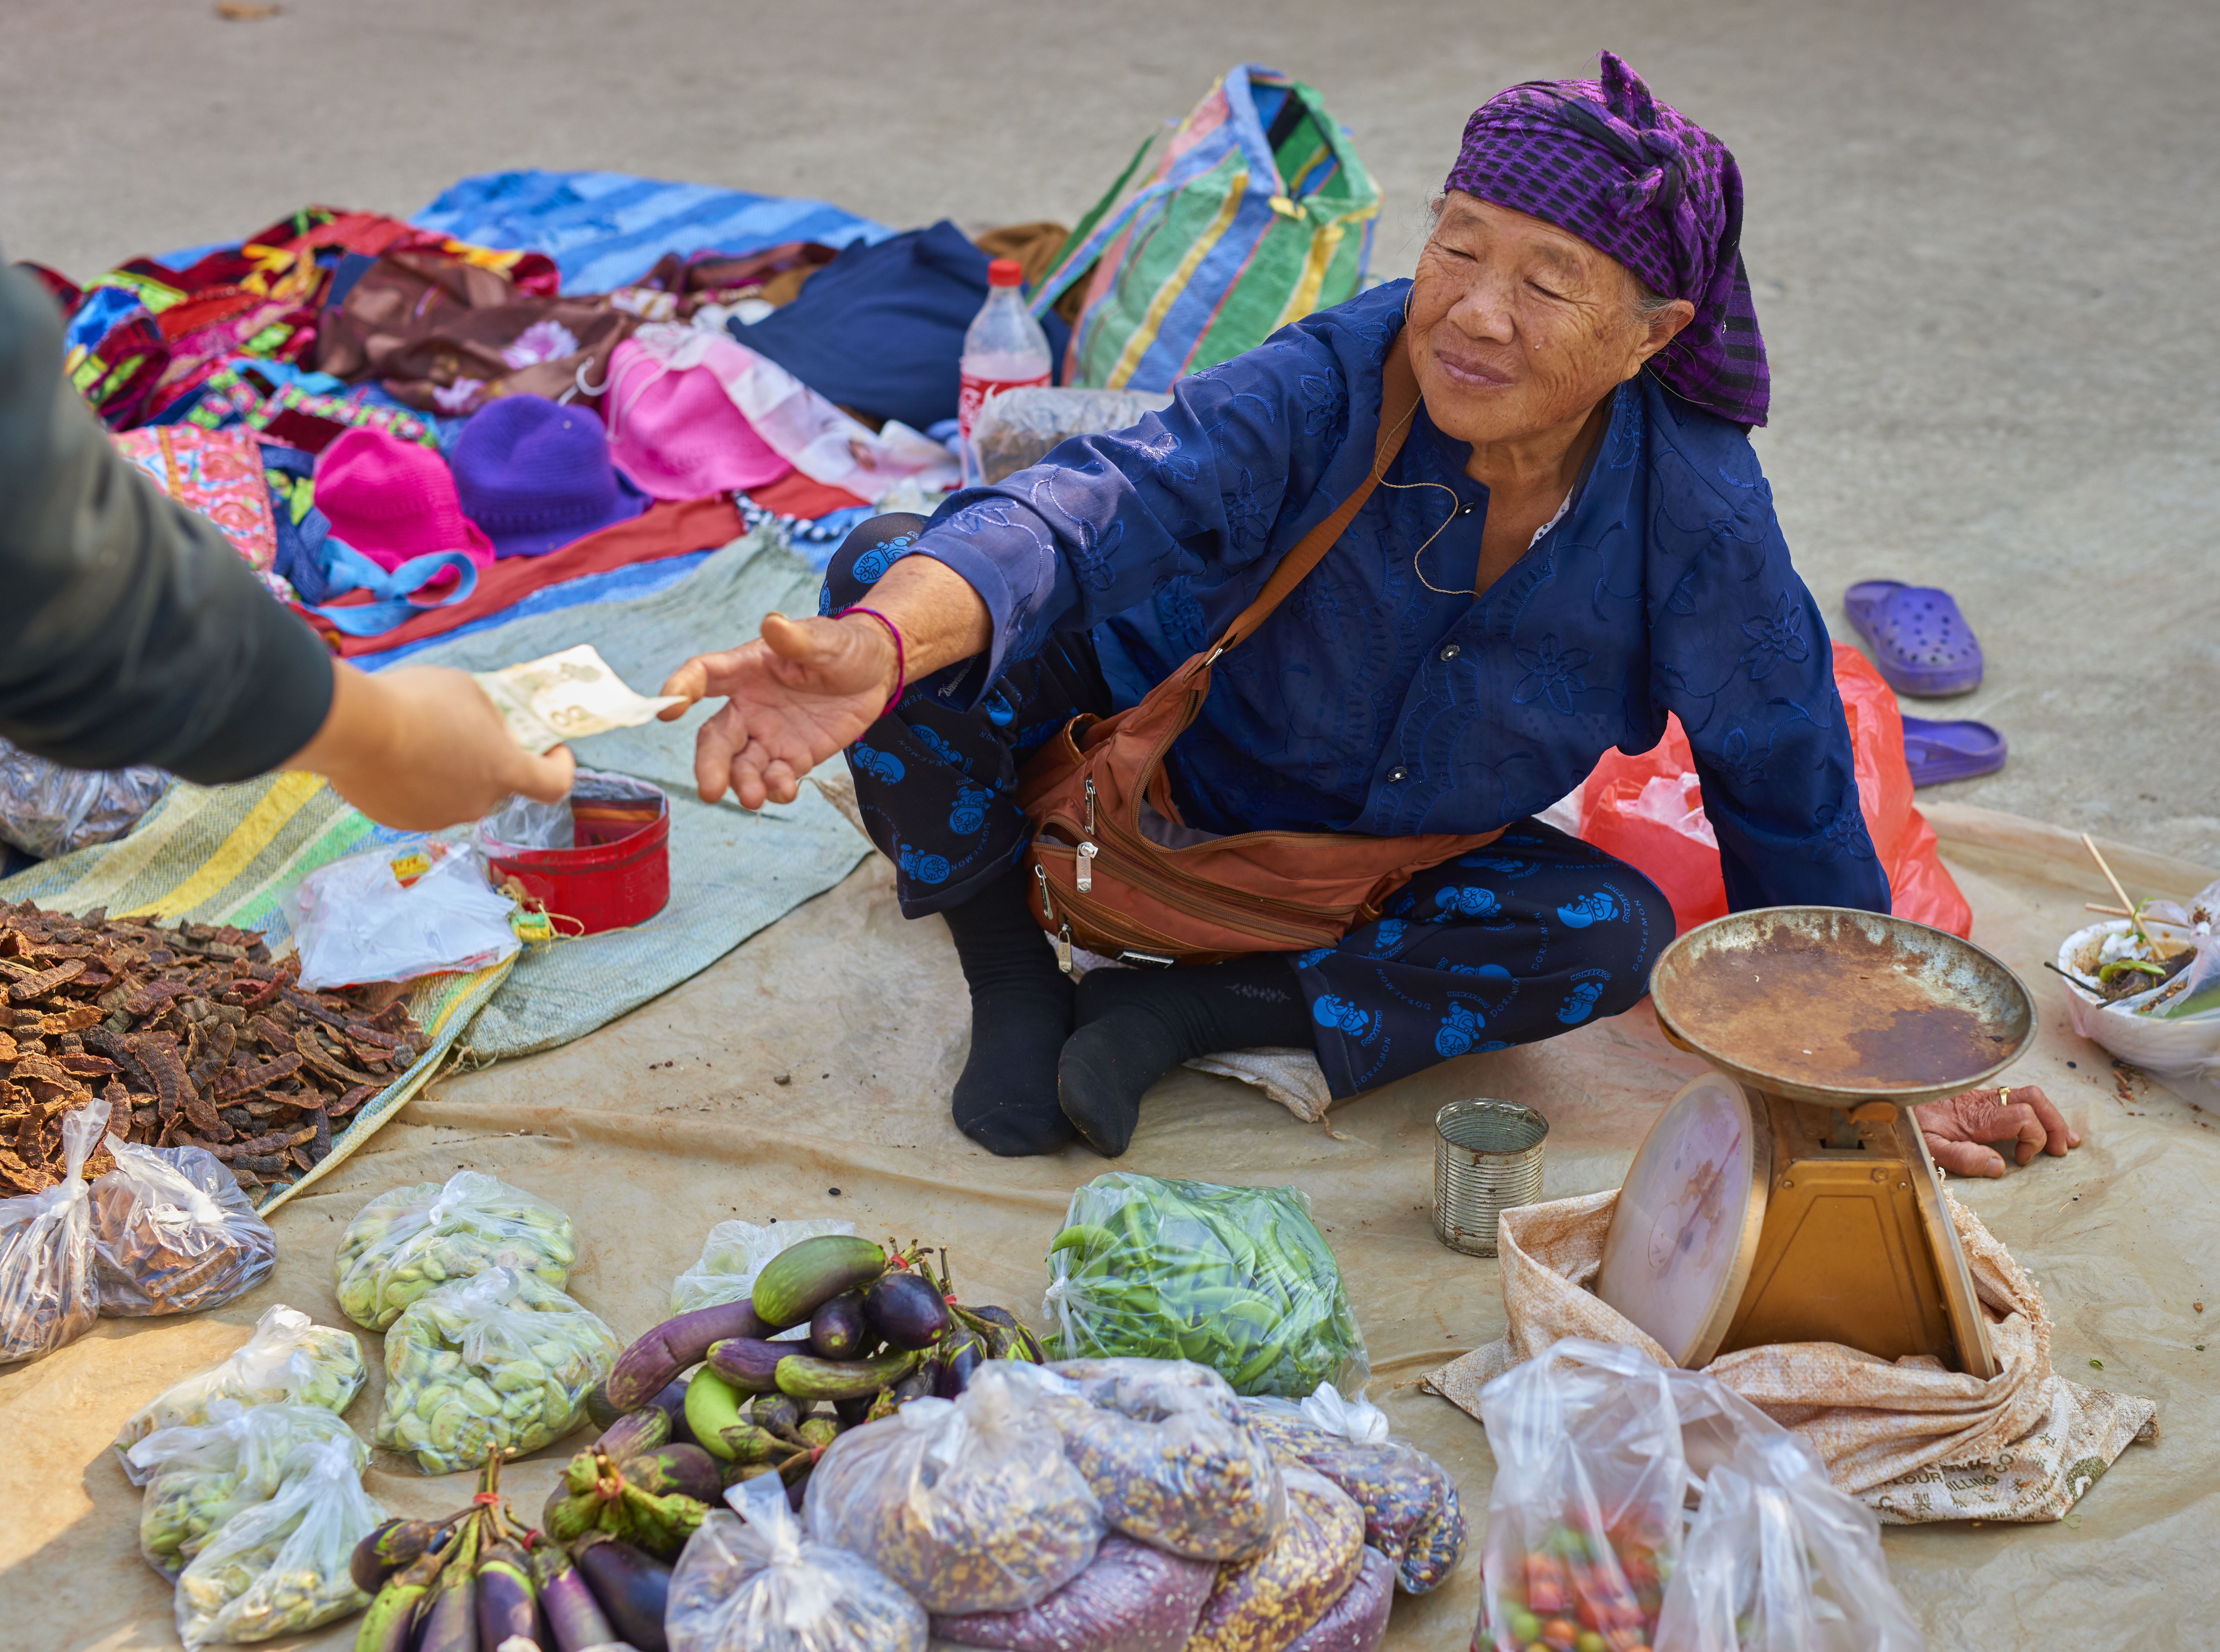 A merchant accepts money at the market in Pai